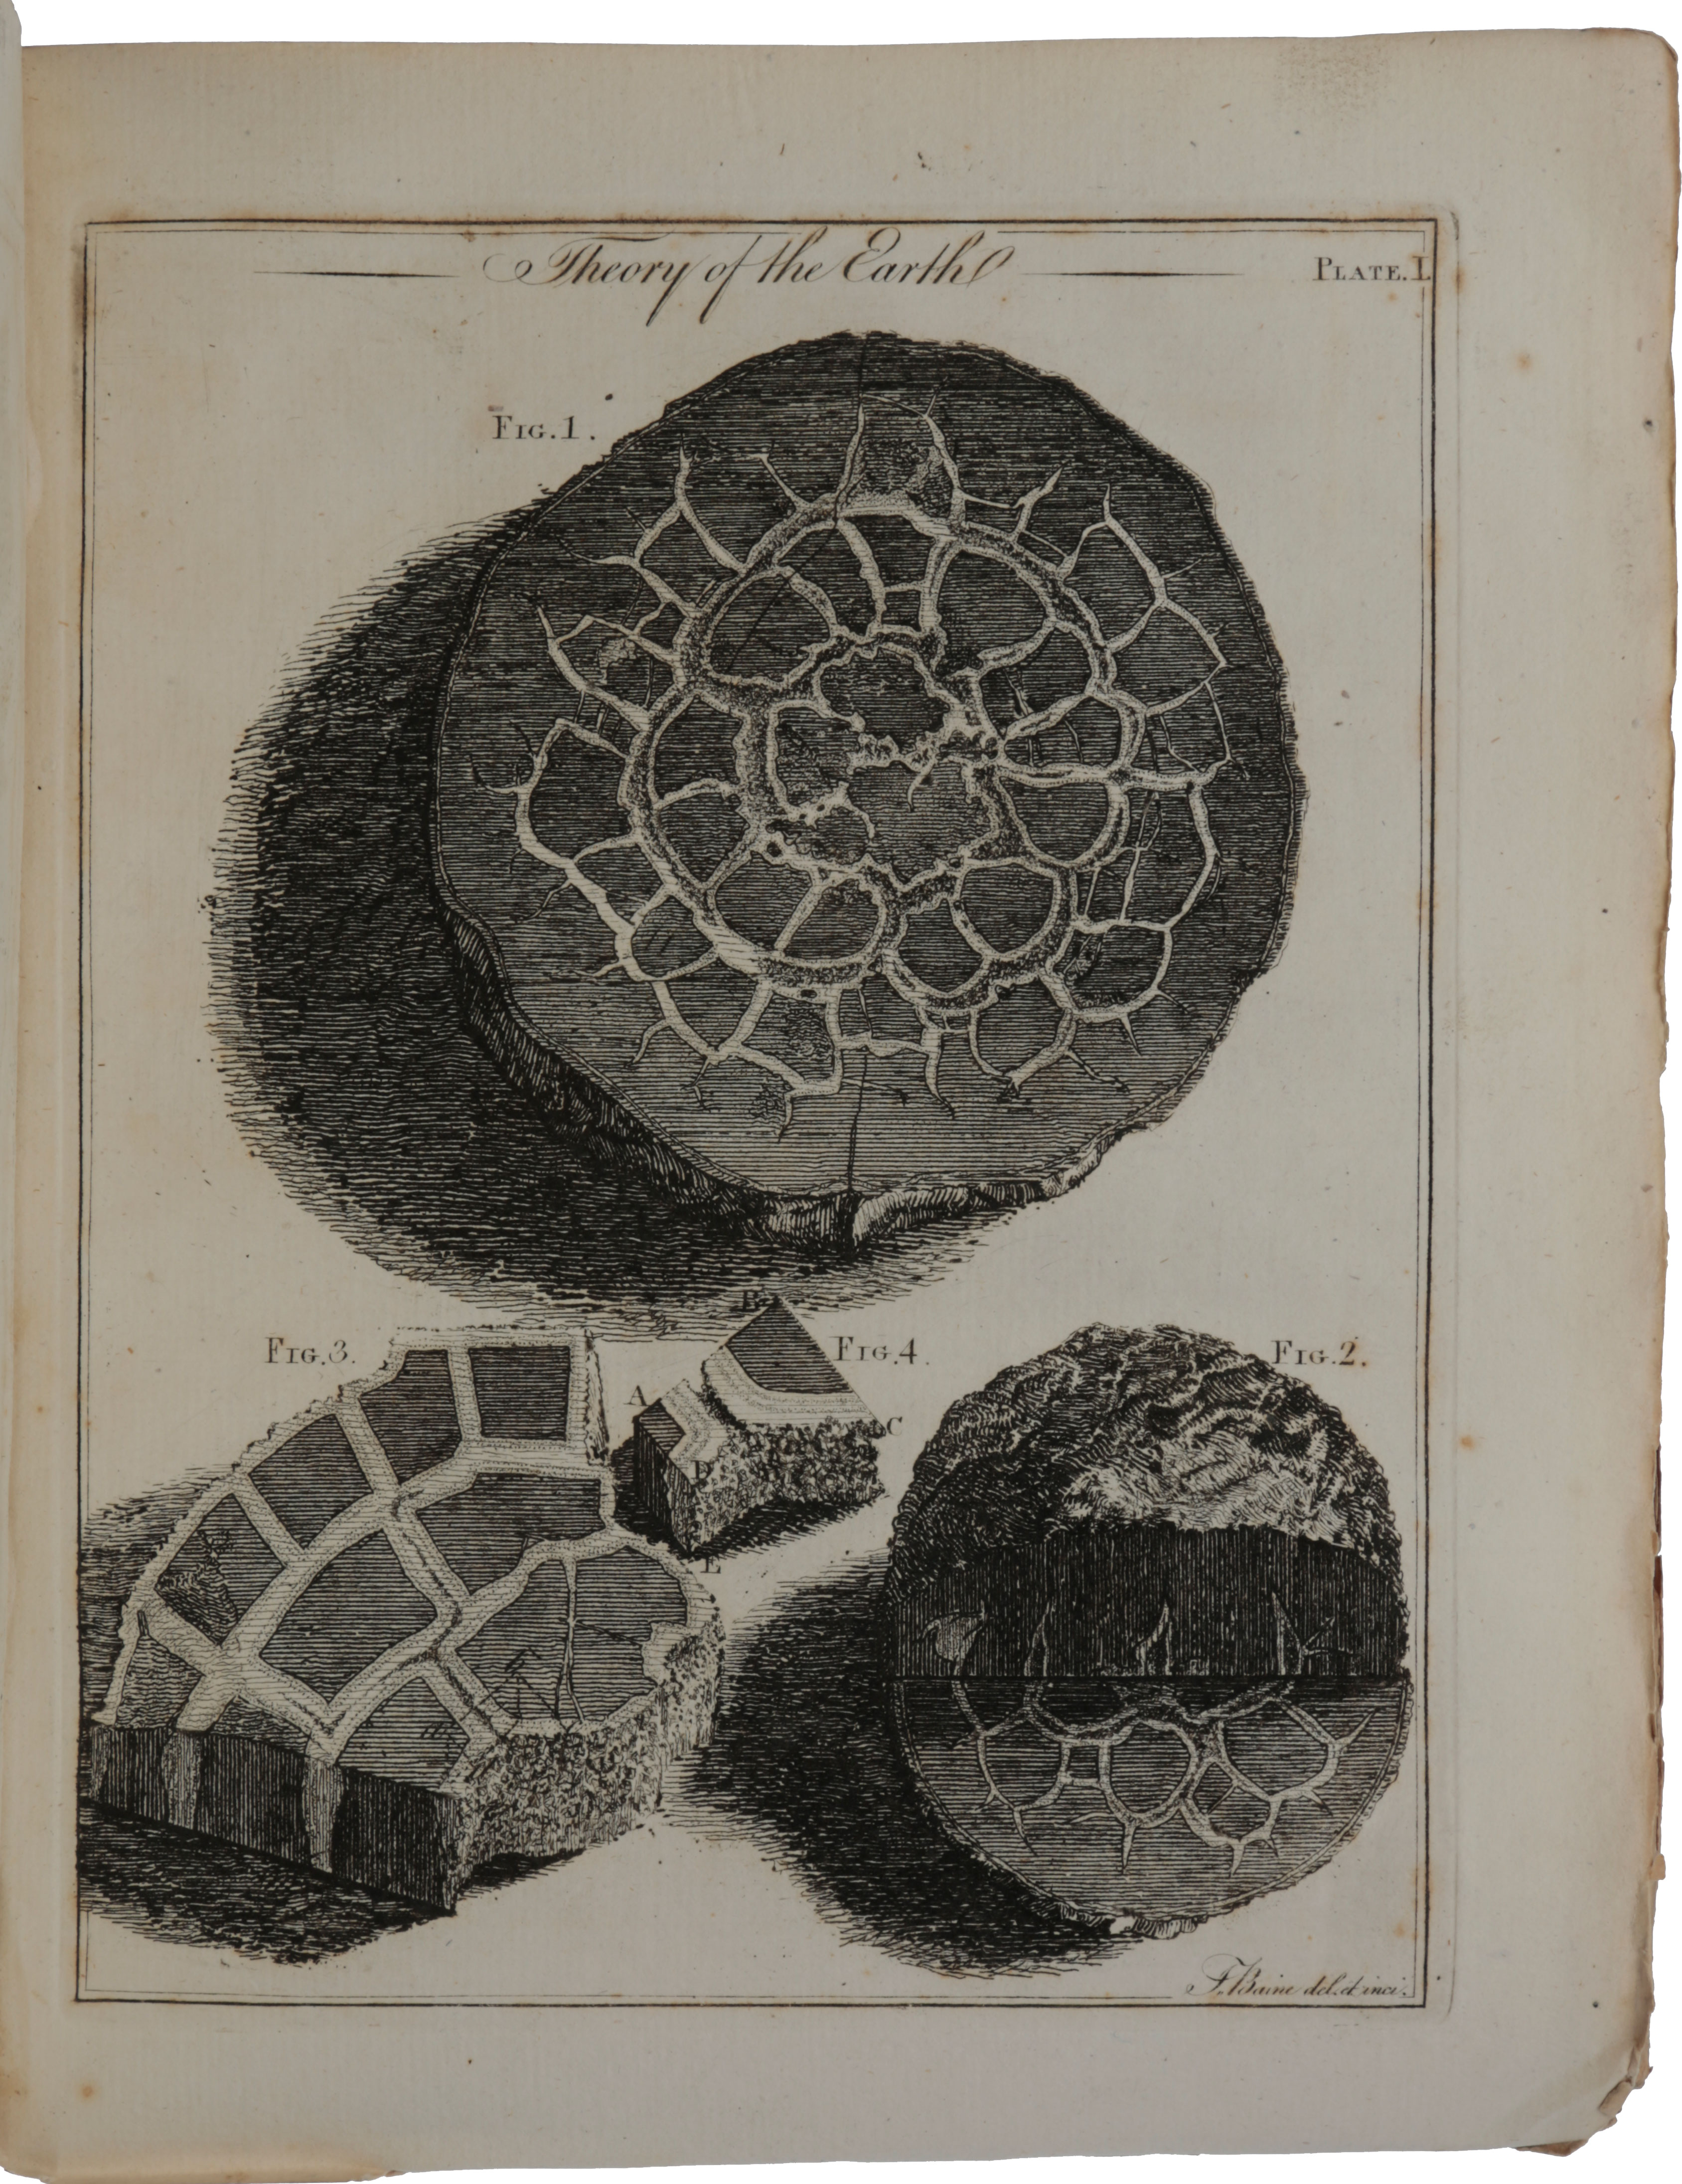 'Theory of the Earth; or an Investigation of the laws observable in the composition, dissolution, and restoration of land upon the globe… Read March 7 and April 4 1785,' in Transactions of the Royal Society of Edinburgh, 1788, Part II, pp. 209-304, with two engraved plates. James HUTTON.